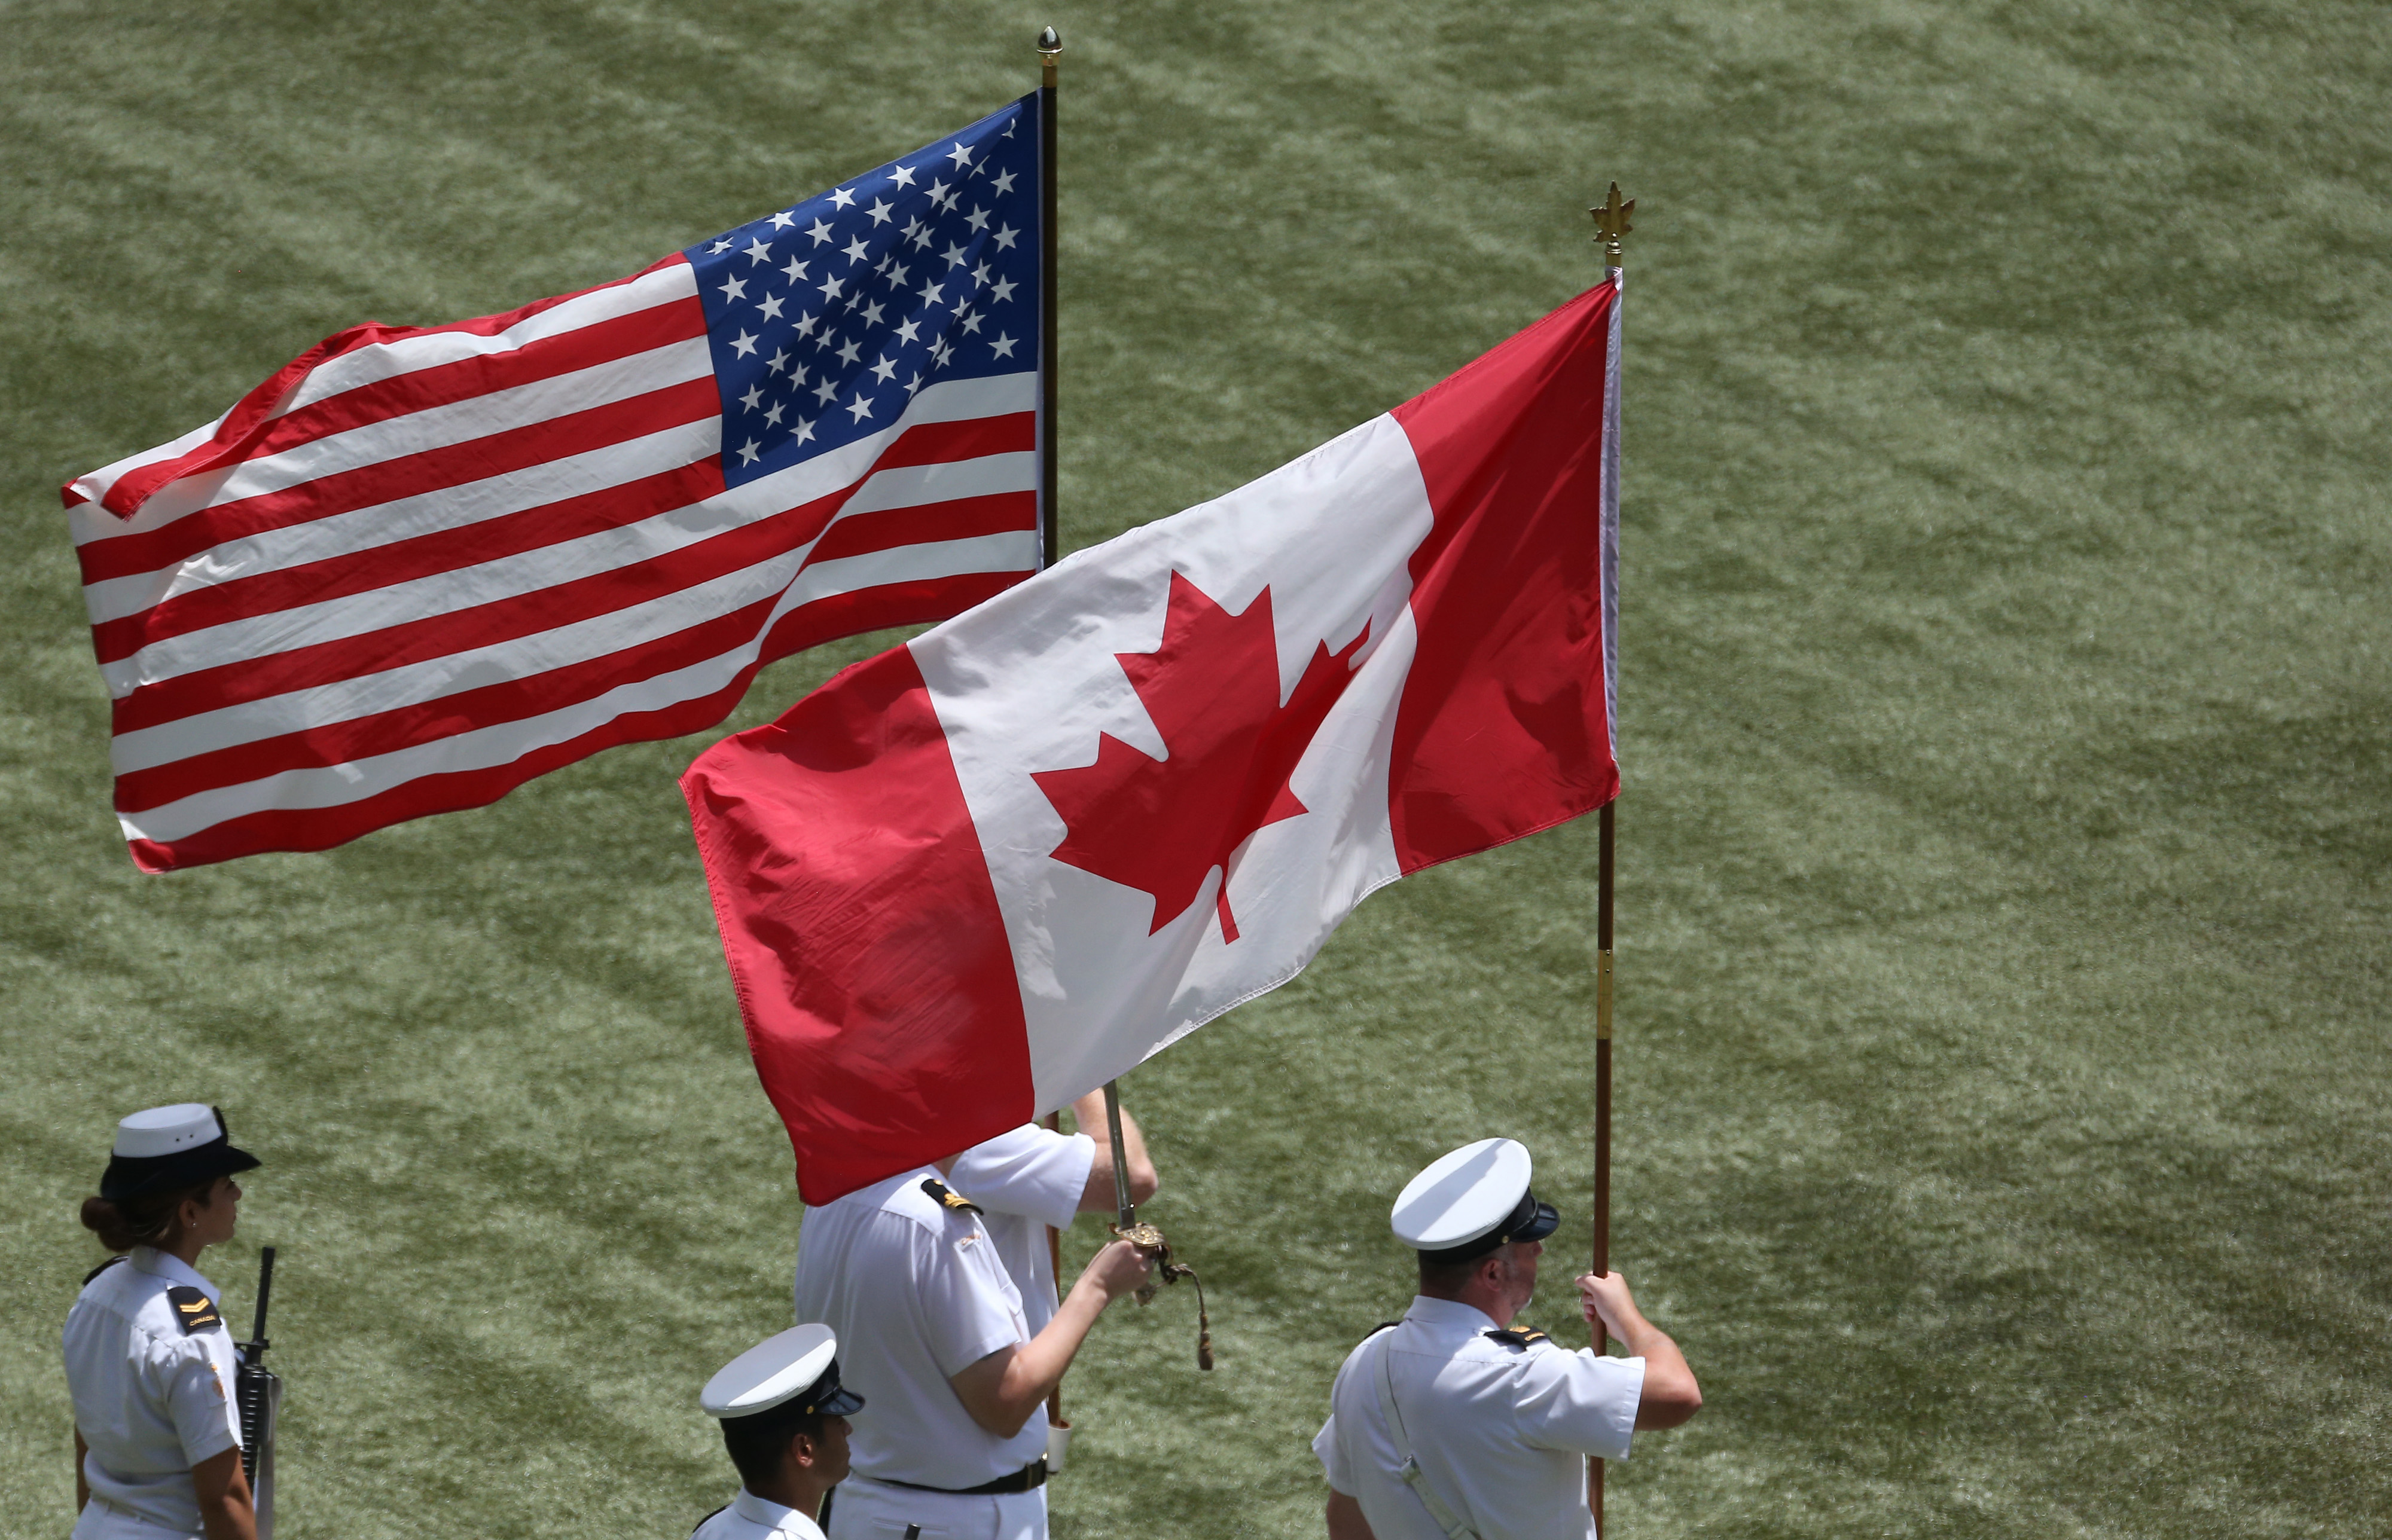 The color guard holds an American flag and a Canadian flag during a pre-game ceremony on Canada Day before the start of the Toronto Blue Jays MLB game against the Milwaukee Brewersat Rogers Centre in Toronto, Ontario, Canada, on July 1, 2014.